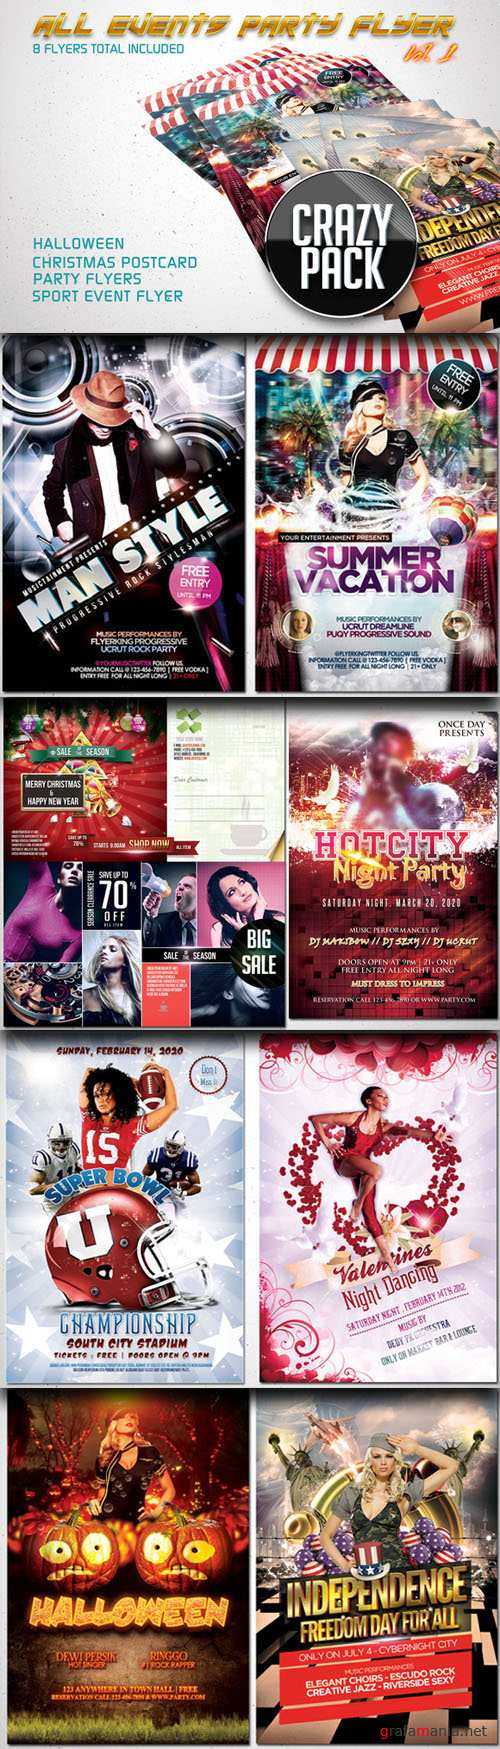 CreativeMarket - All Events Flyer Pack Vol.1 (8 in 1)